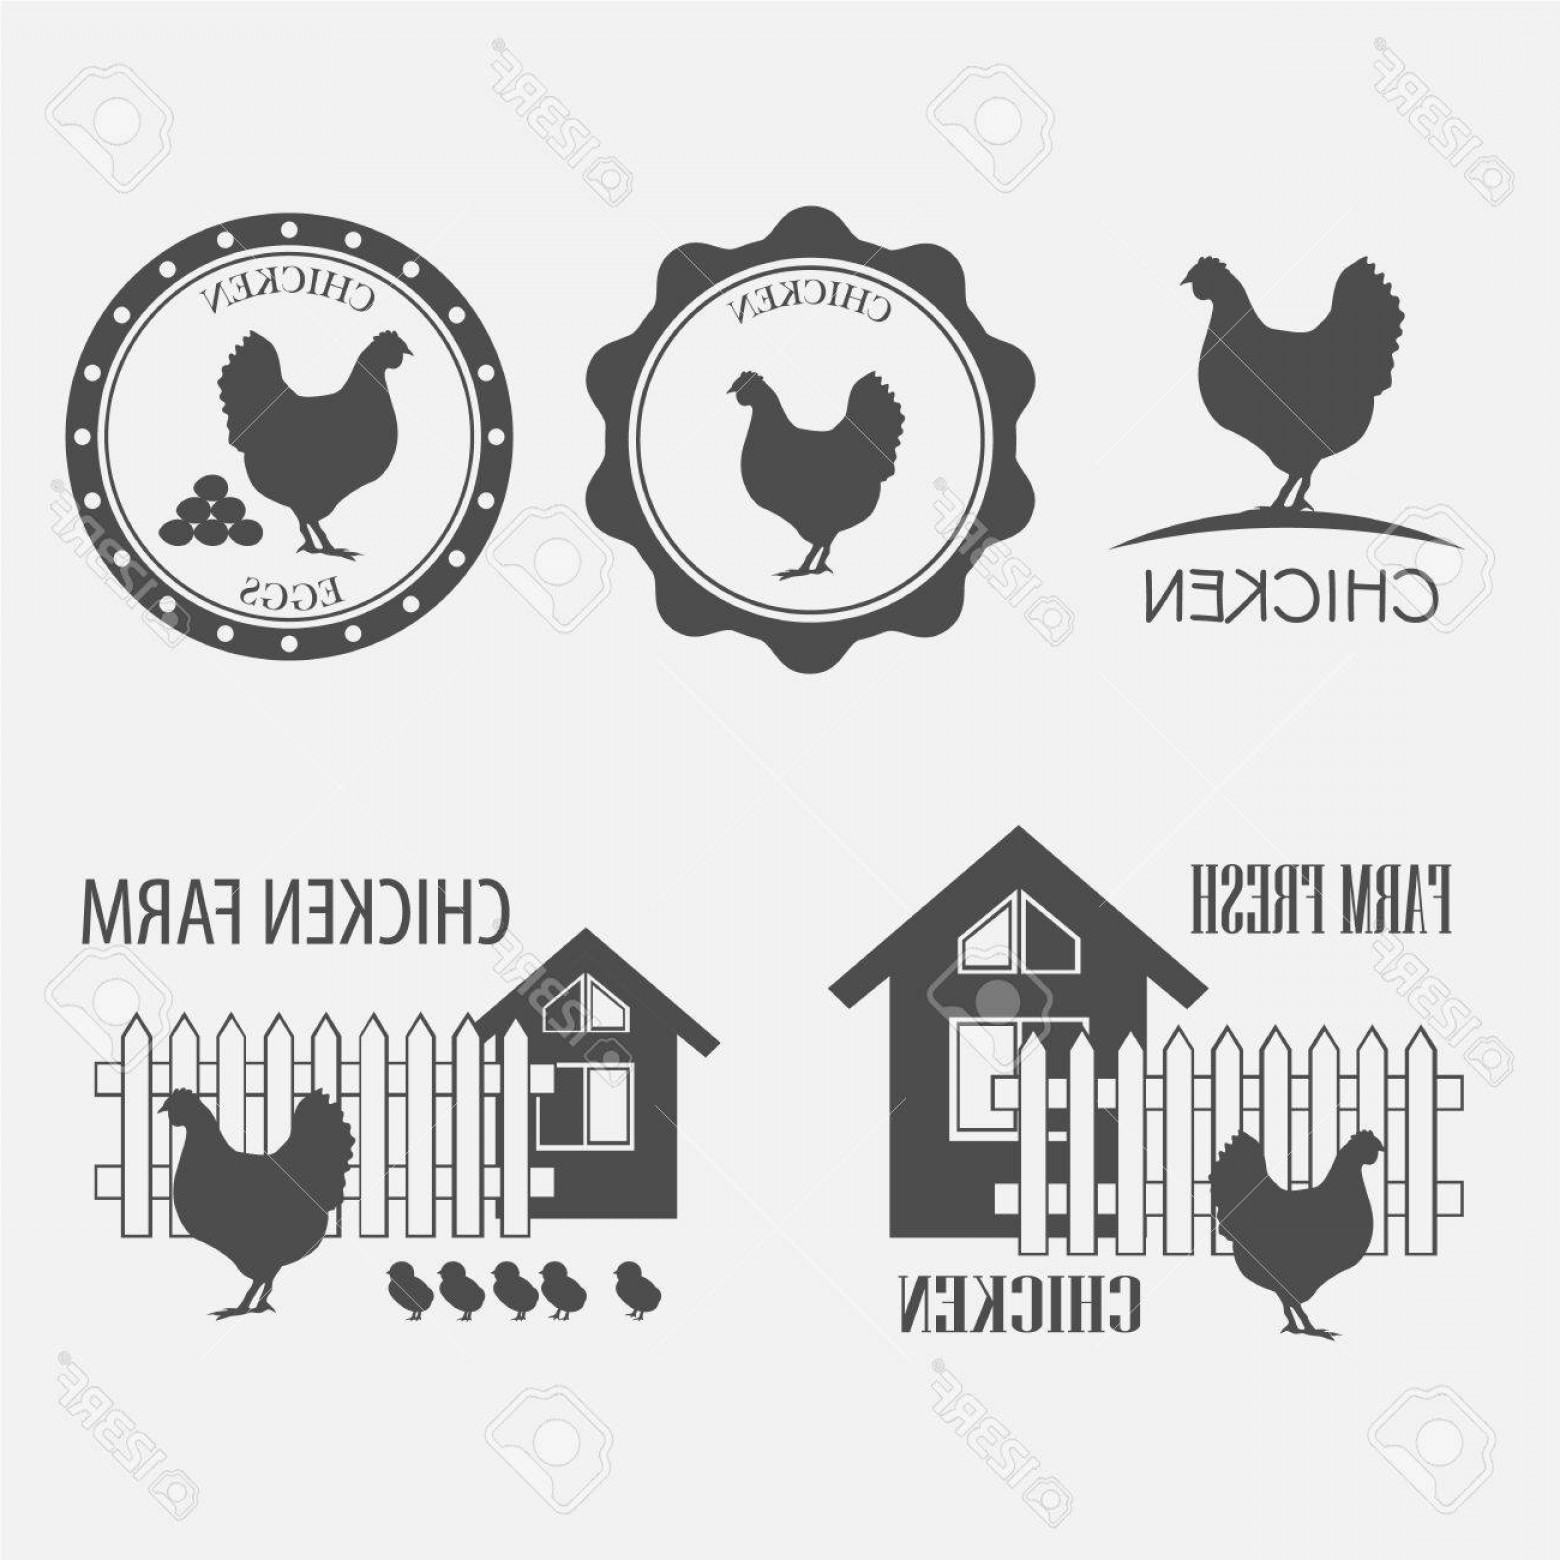 Poultry Vector Art: Photostock Vector Chicken Farm And Chicken Eggs Vector Illustration